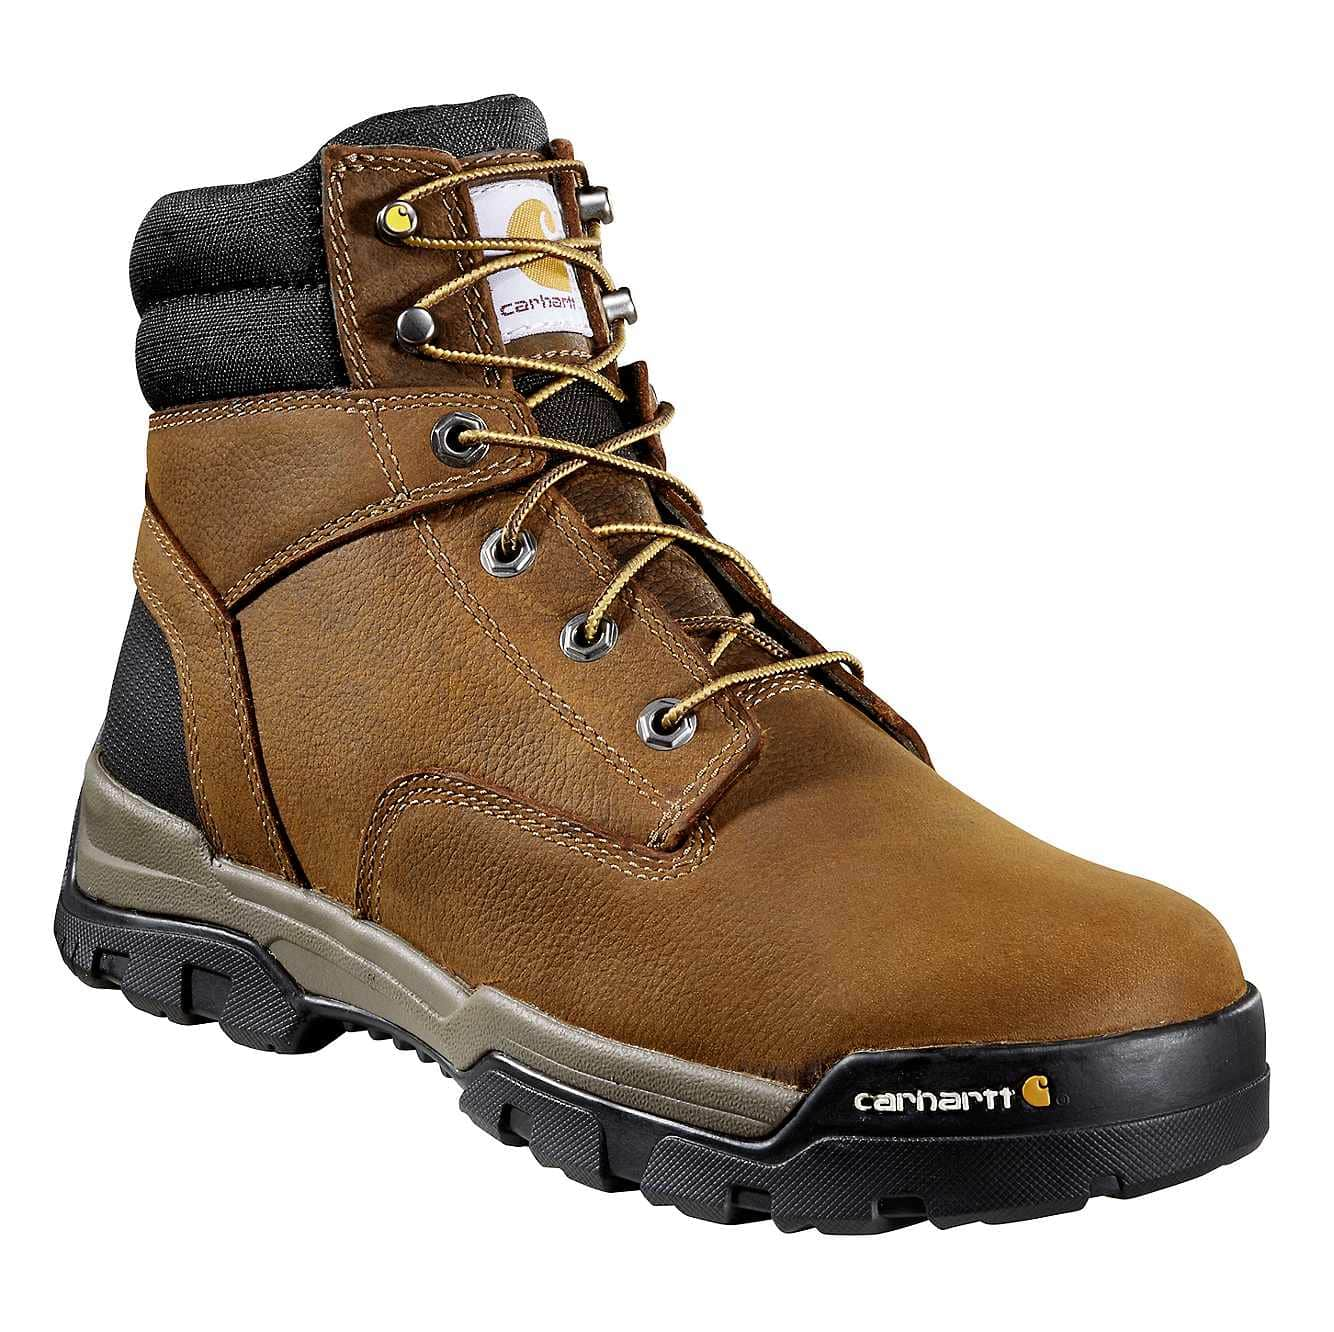 Picture of Ground Force 6-Inch Non-Safety Toe Work Boot in Brown Oil Tanned